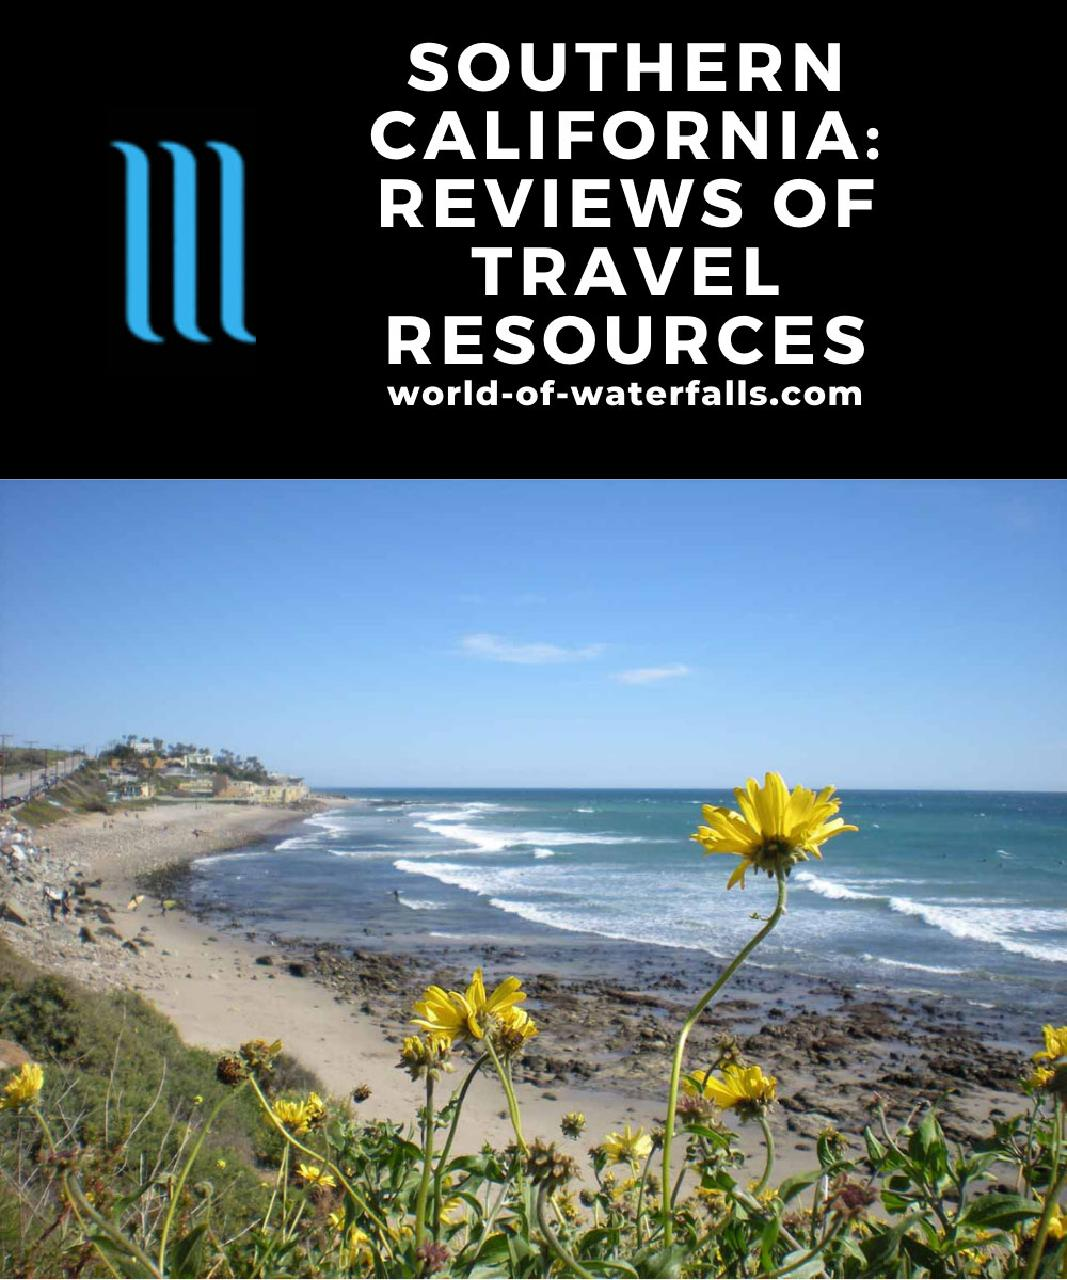 Southern California: Reviews of Travel Resources